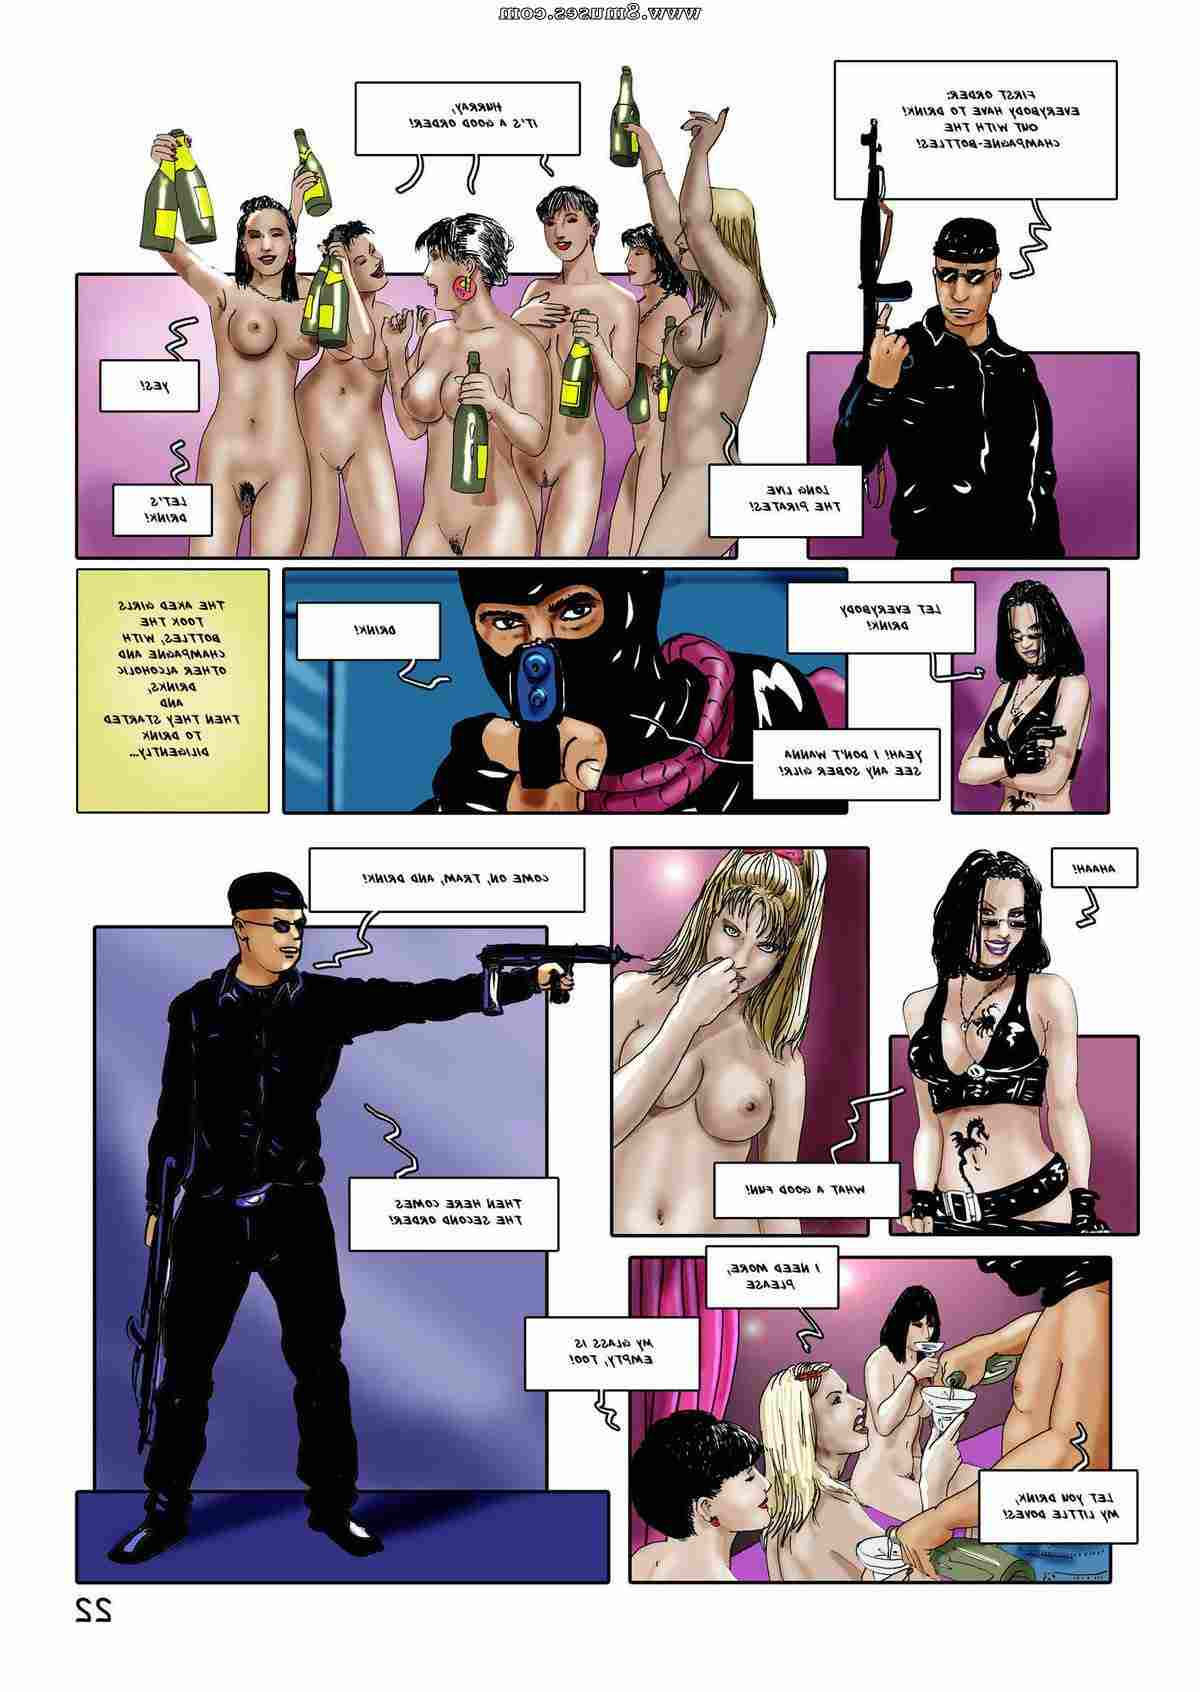 AllPornComics_com-Comics/Danube-Girls Danube_Girls__8muses_-_Sex_and_Porn_Comics_22.jpg